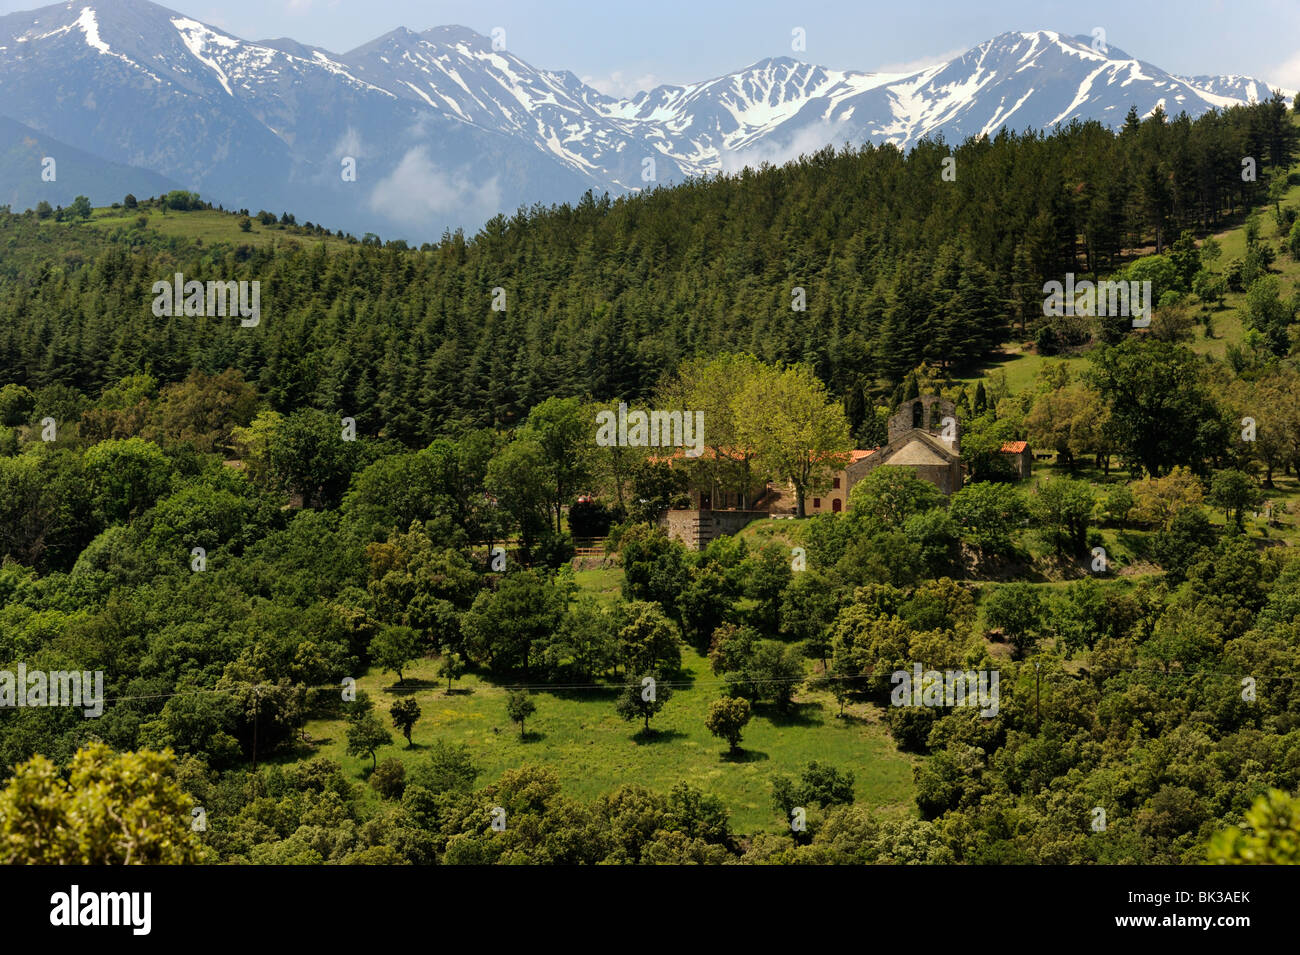 Mountain view near St. Marsal, Pyrenees Orientales, France, Europe - Stock Image